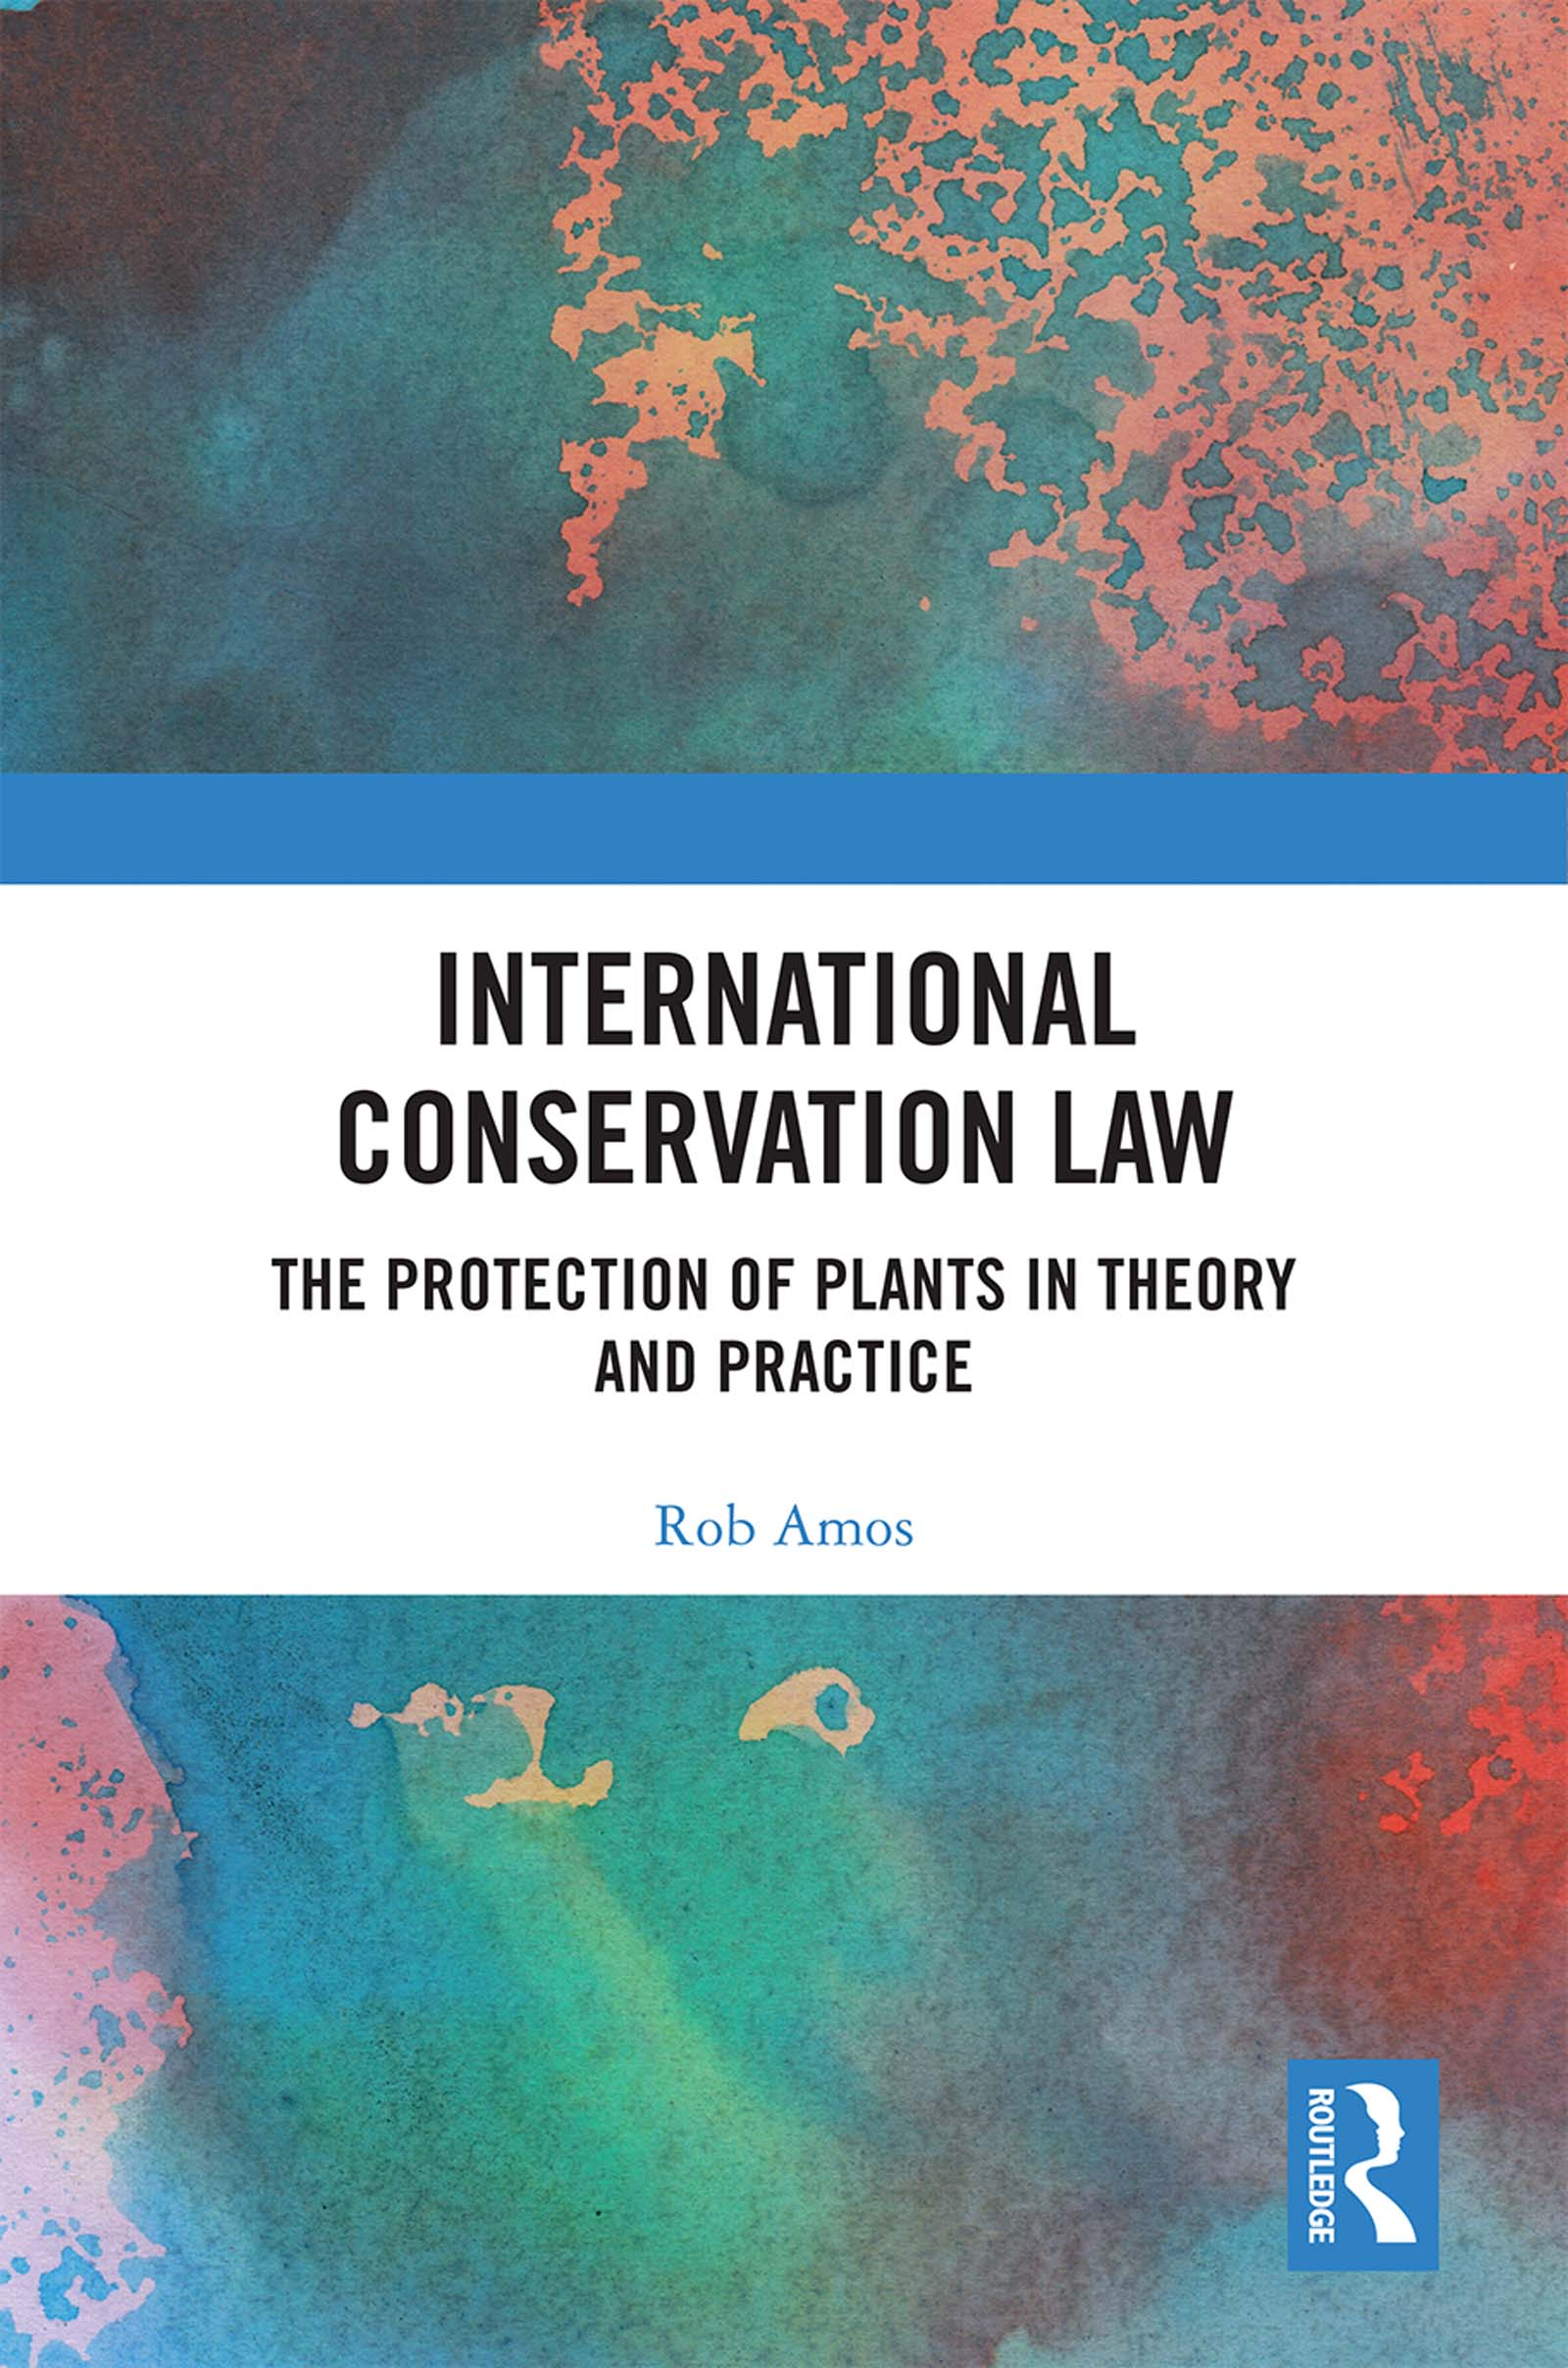 International Conservation Law: The Protection of Plants in Theory and Practice book cover